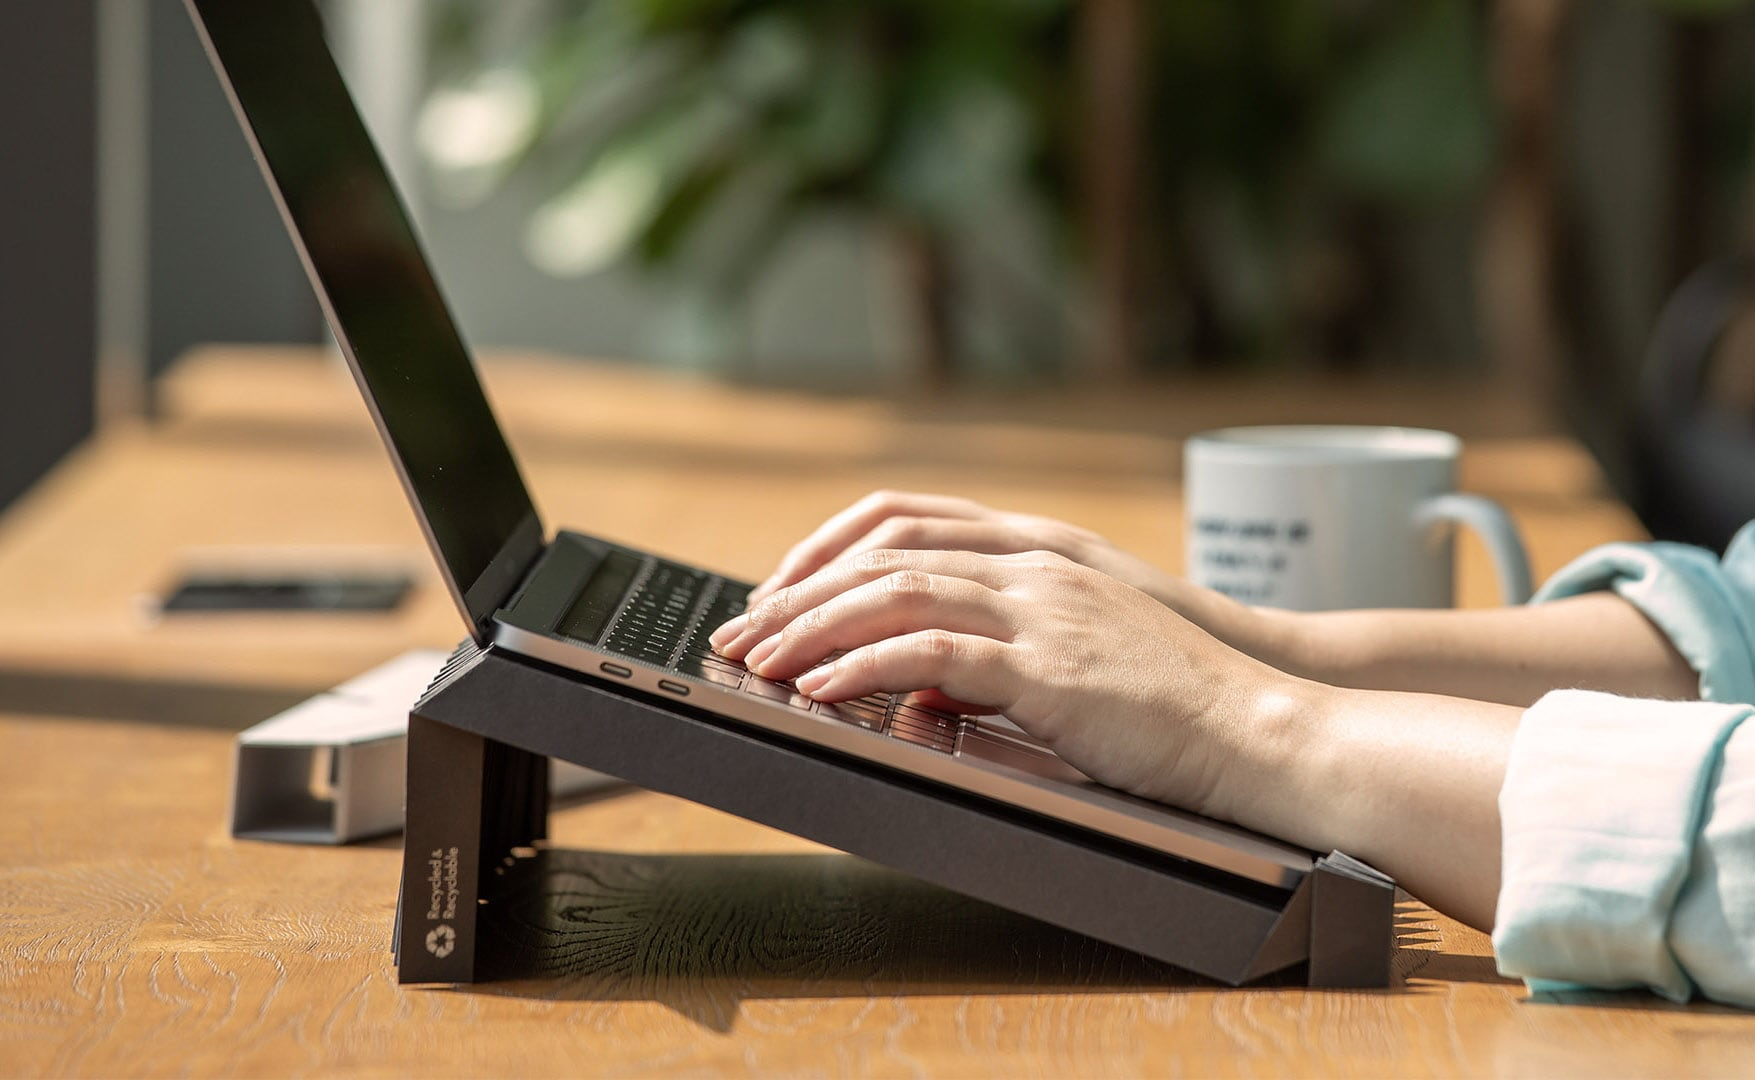 g.flow Portable Paper Laptop Stand is made from a single sheet of recycled paper